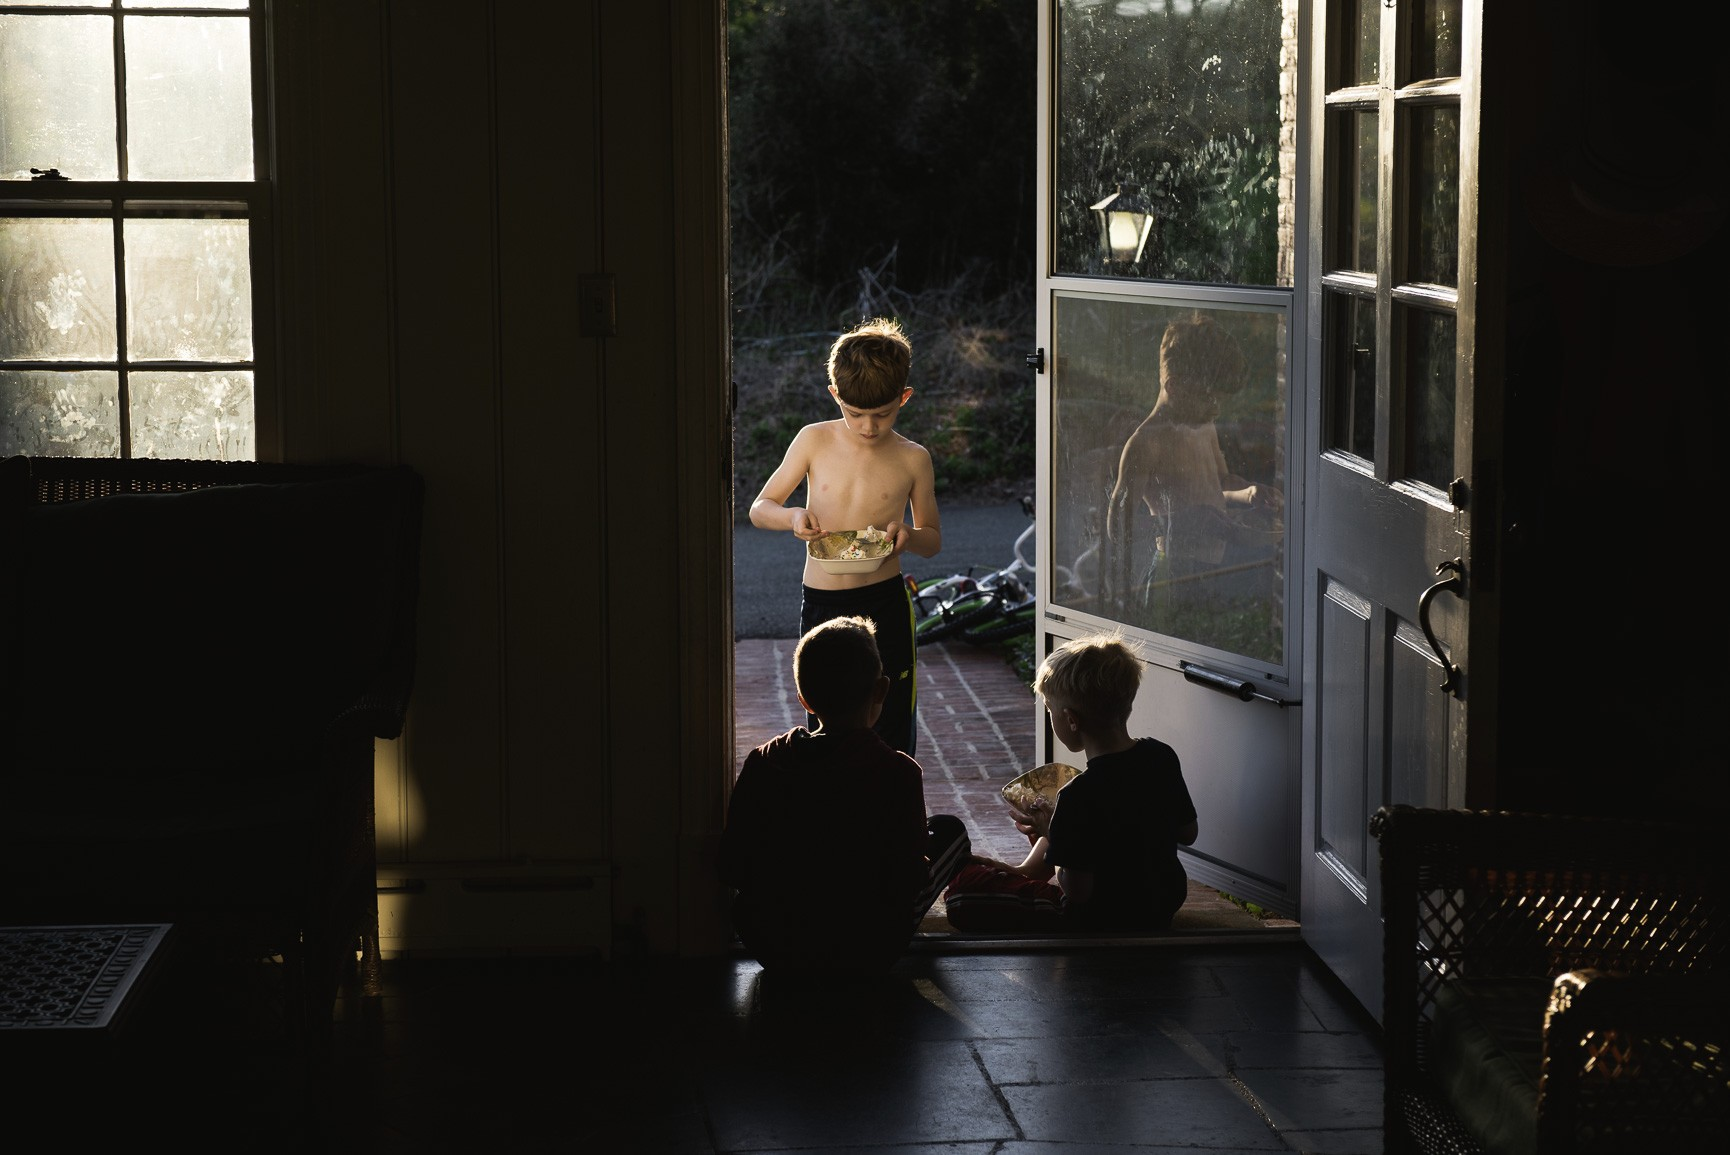 Everyday-Life-by-Sarah-Wilkerson-1730px-3794